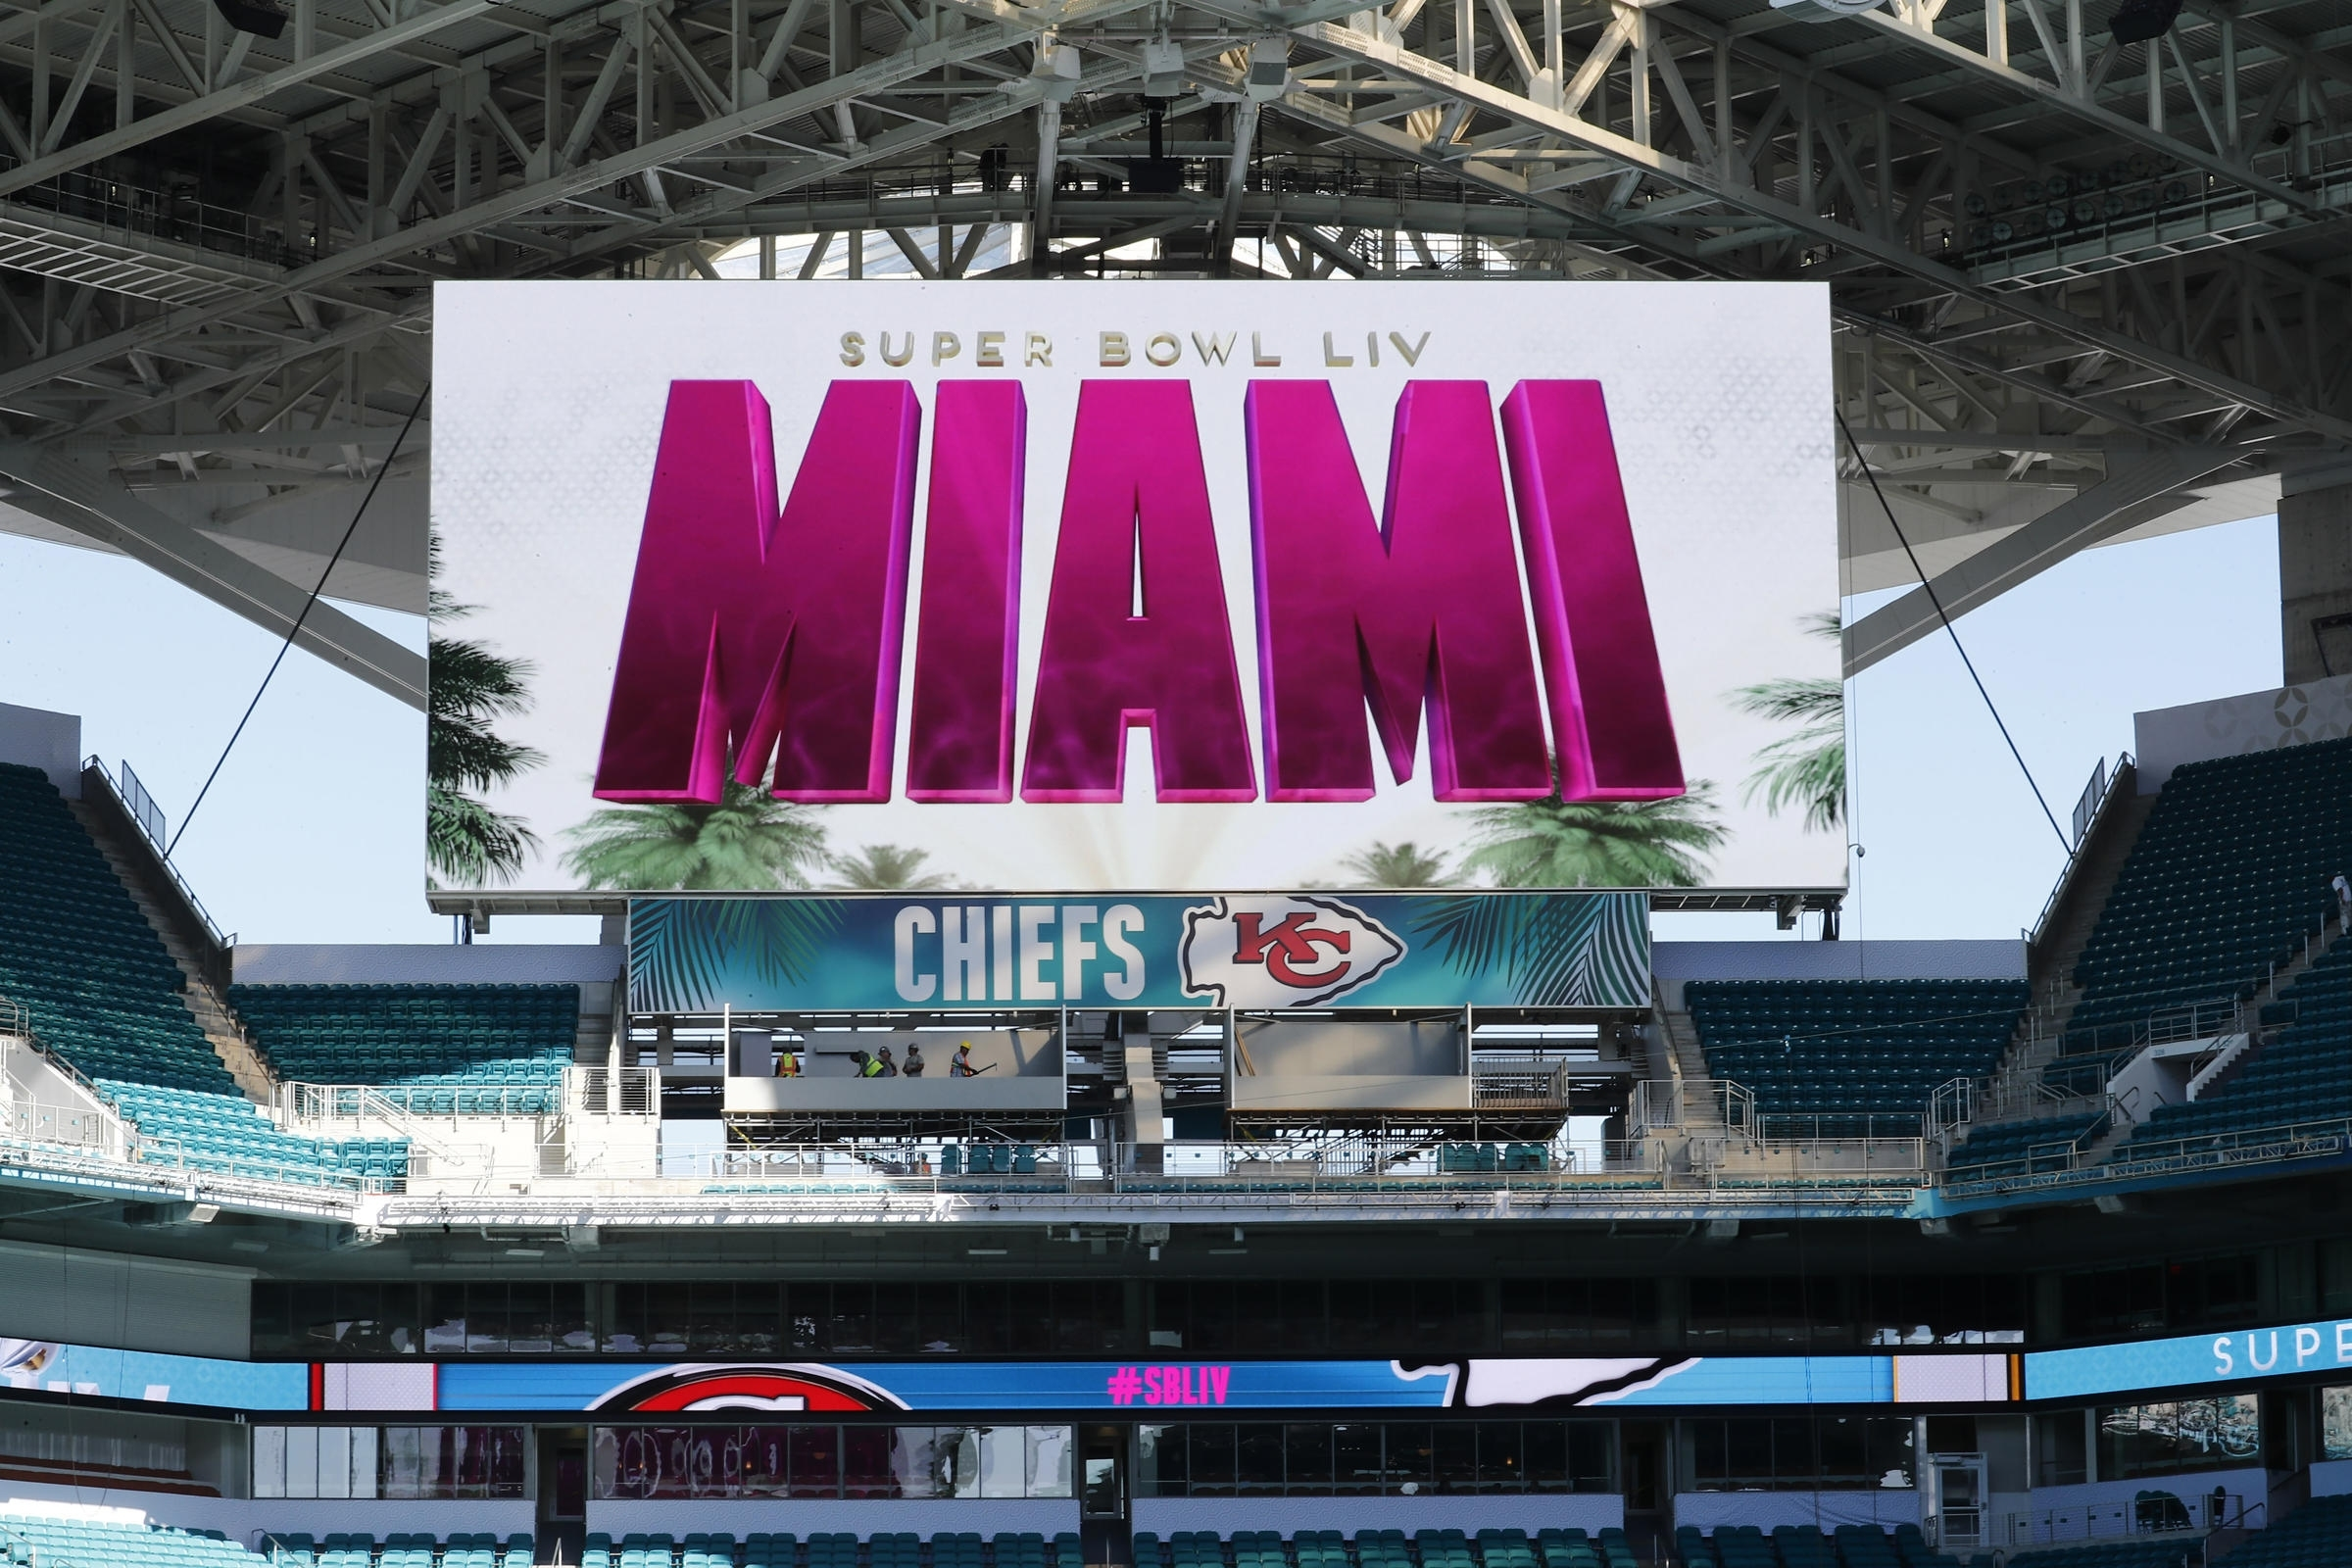 Chiefs Fans Going To Miami For Super Bowl Liv Are Paying throughout Miami Super Bowl Tickets